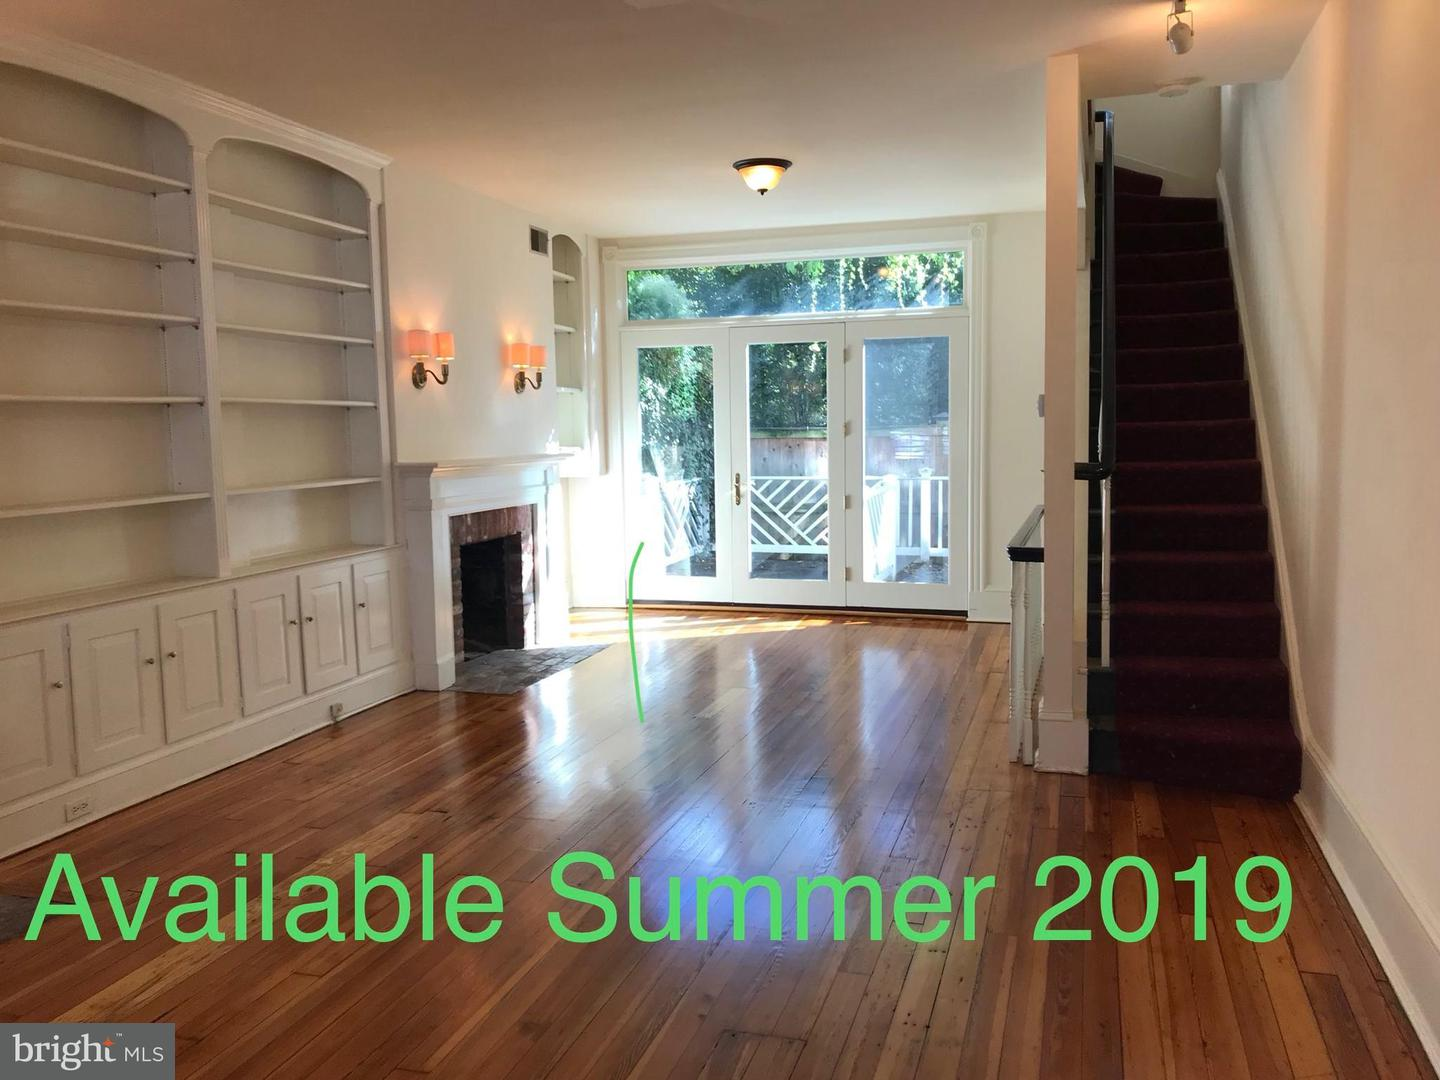 Other Residential for Rent at 1321 33rd St NW Washington, District Of Columbia 20007 United States